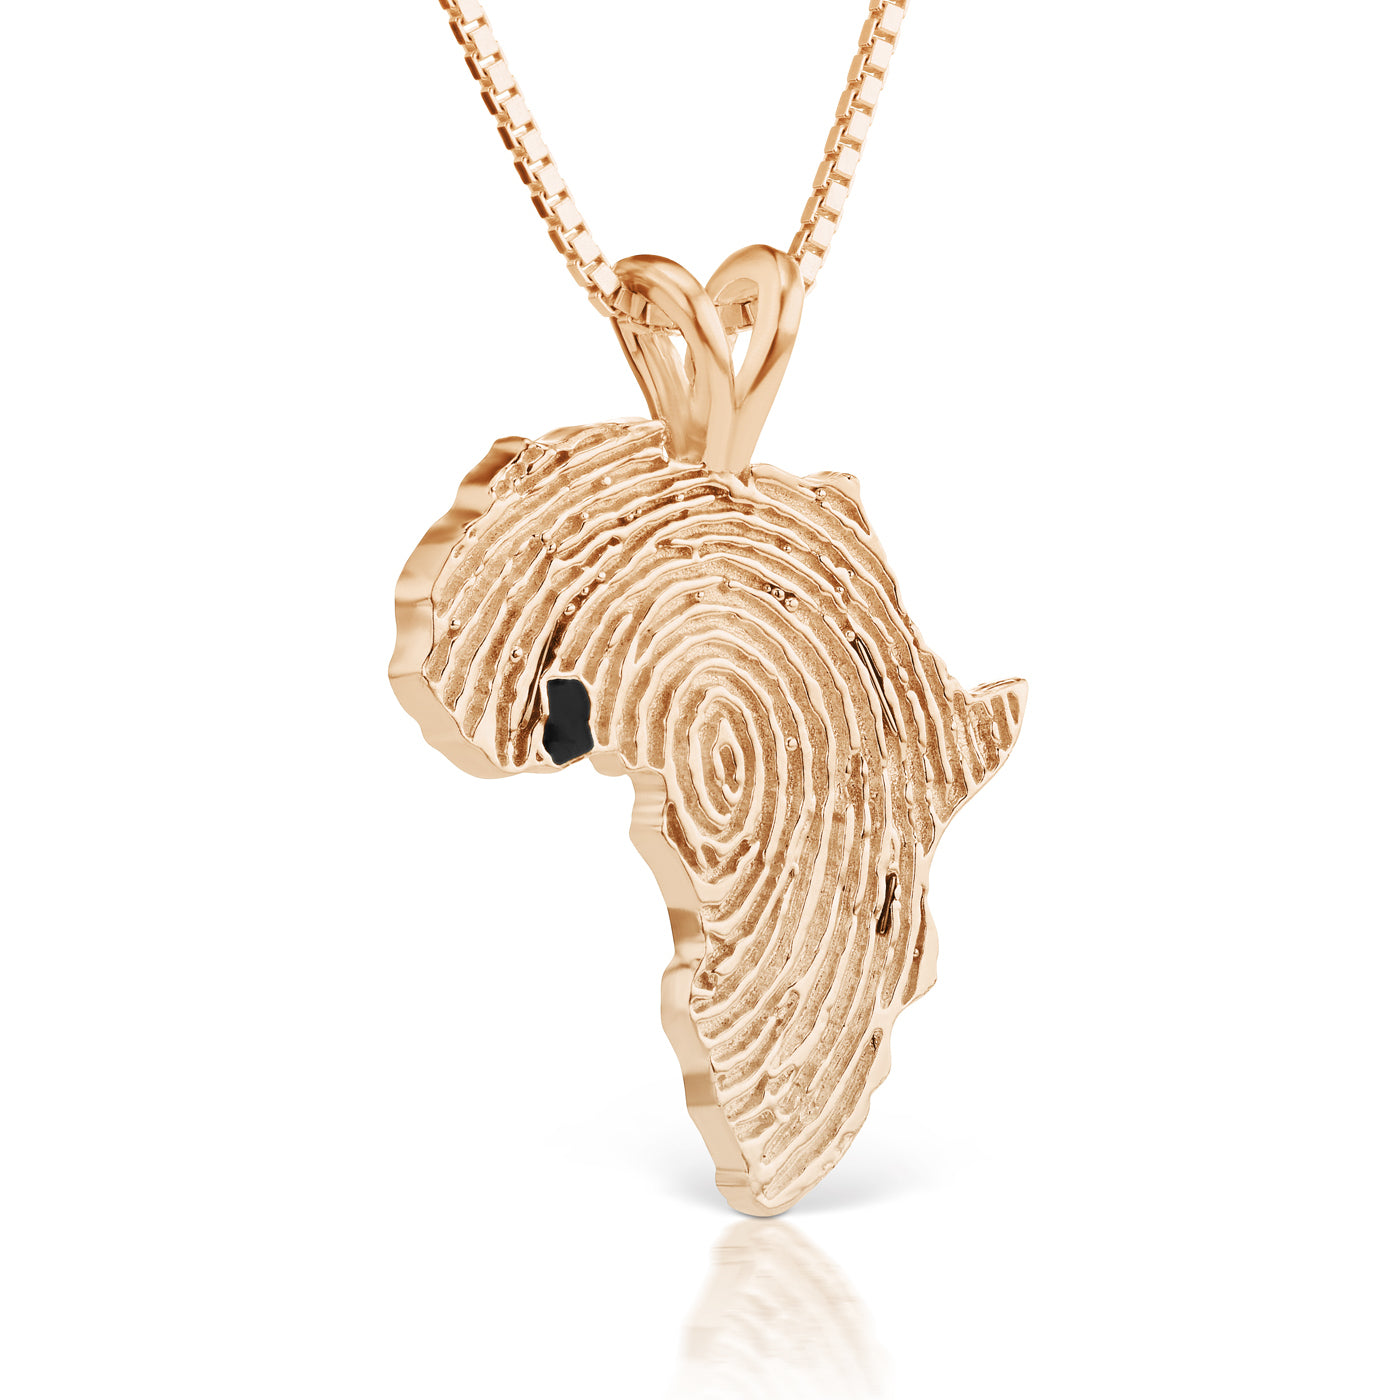 Ghana Heirloom Pendant - 14K Rose Gold 34mm